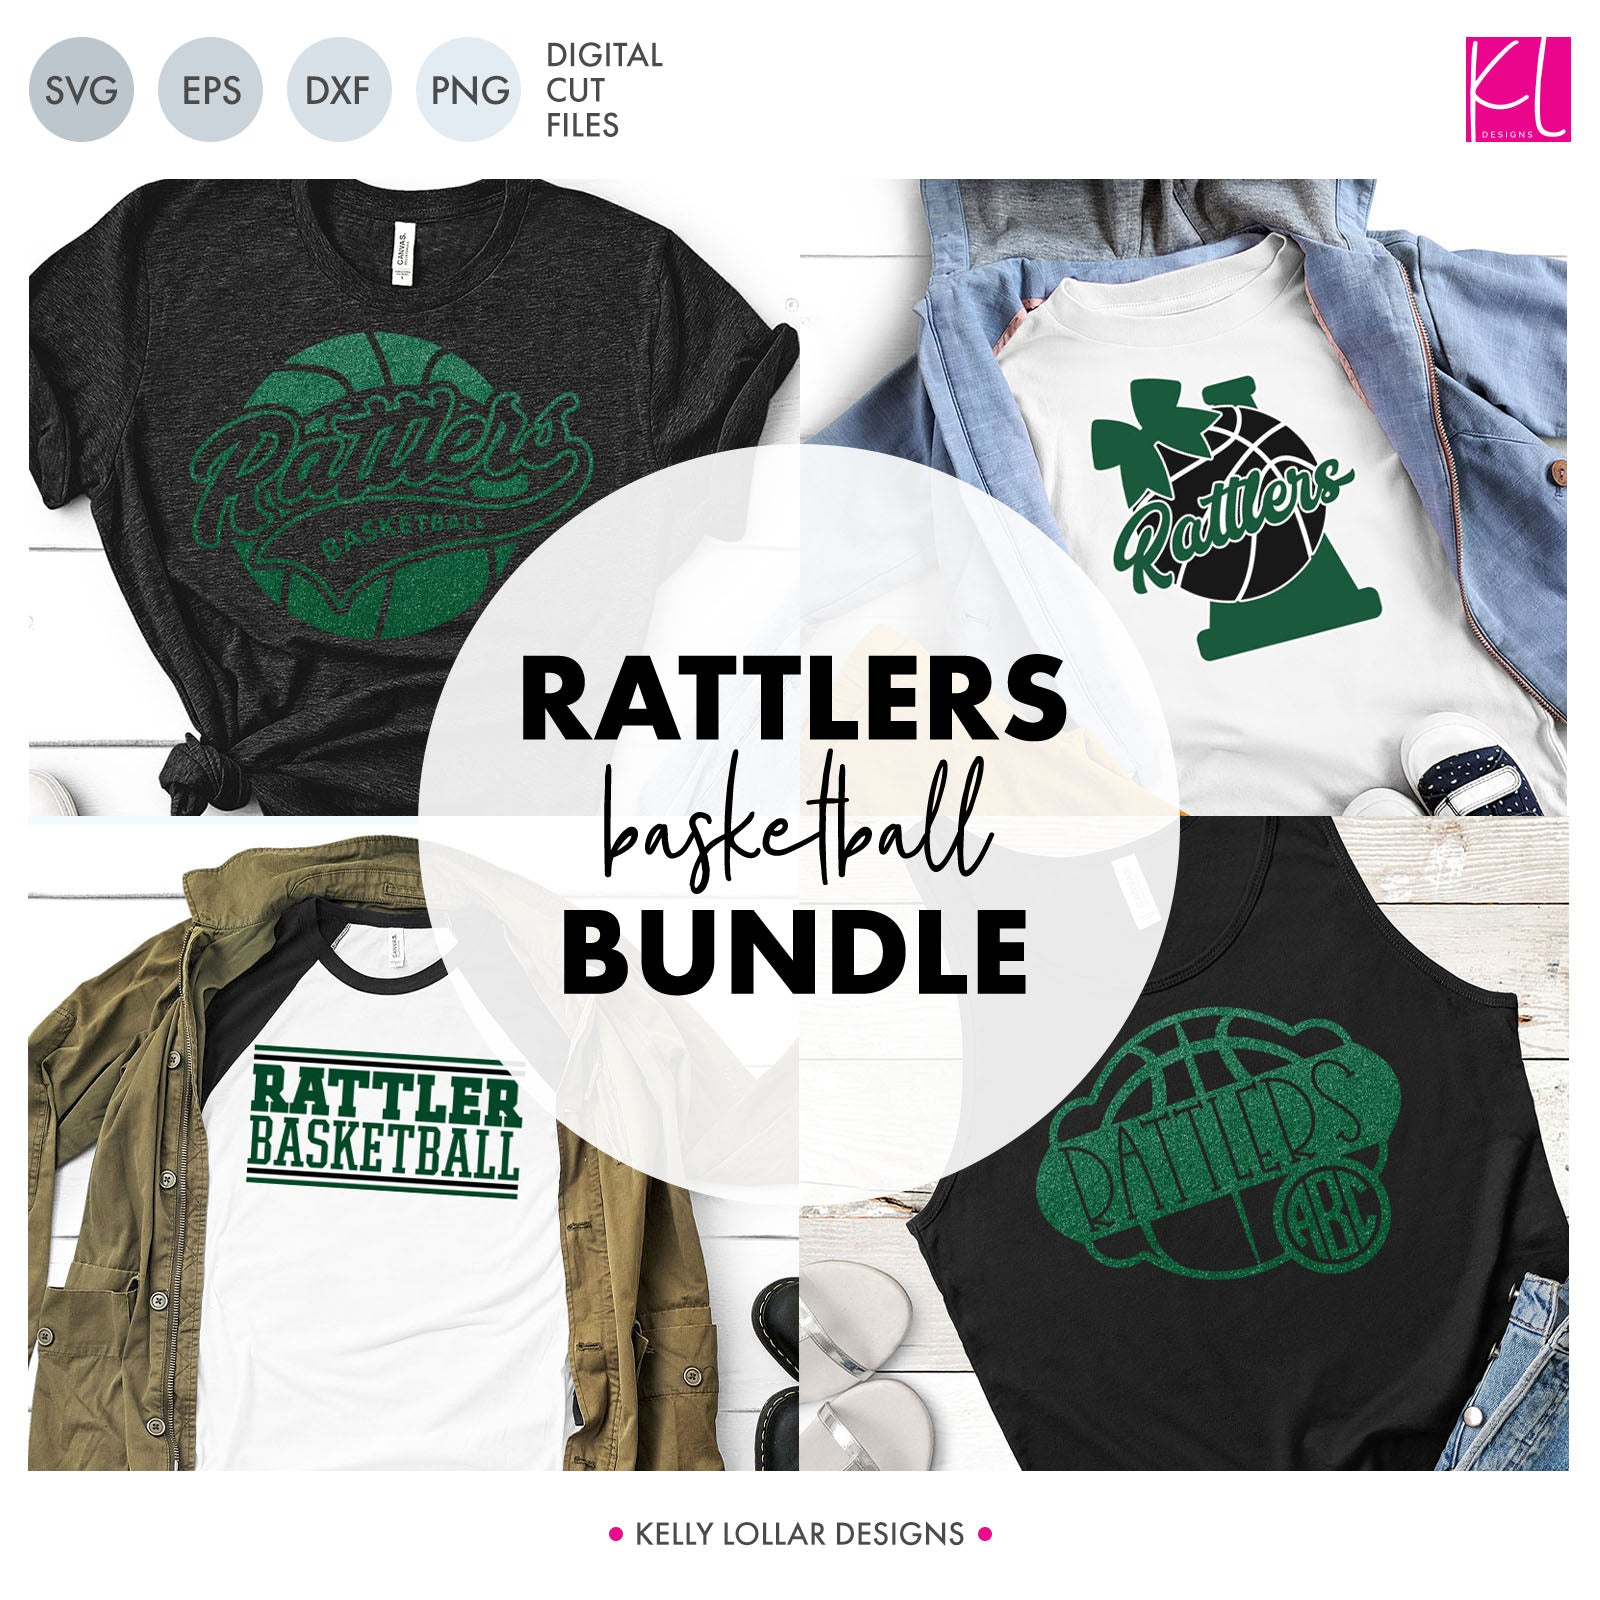 Rattlers Basketball Bundle | SVG DXF EPS PNG Cut Files